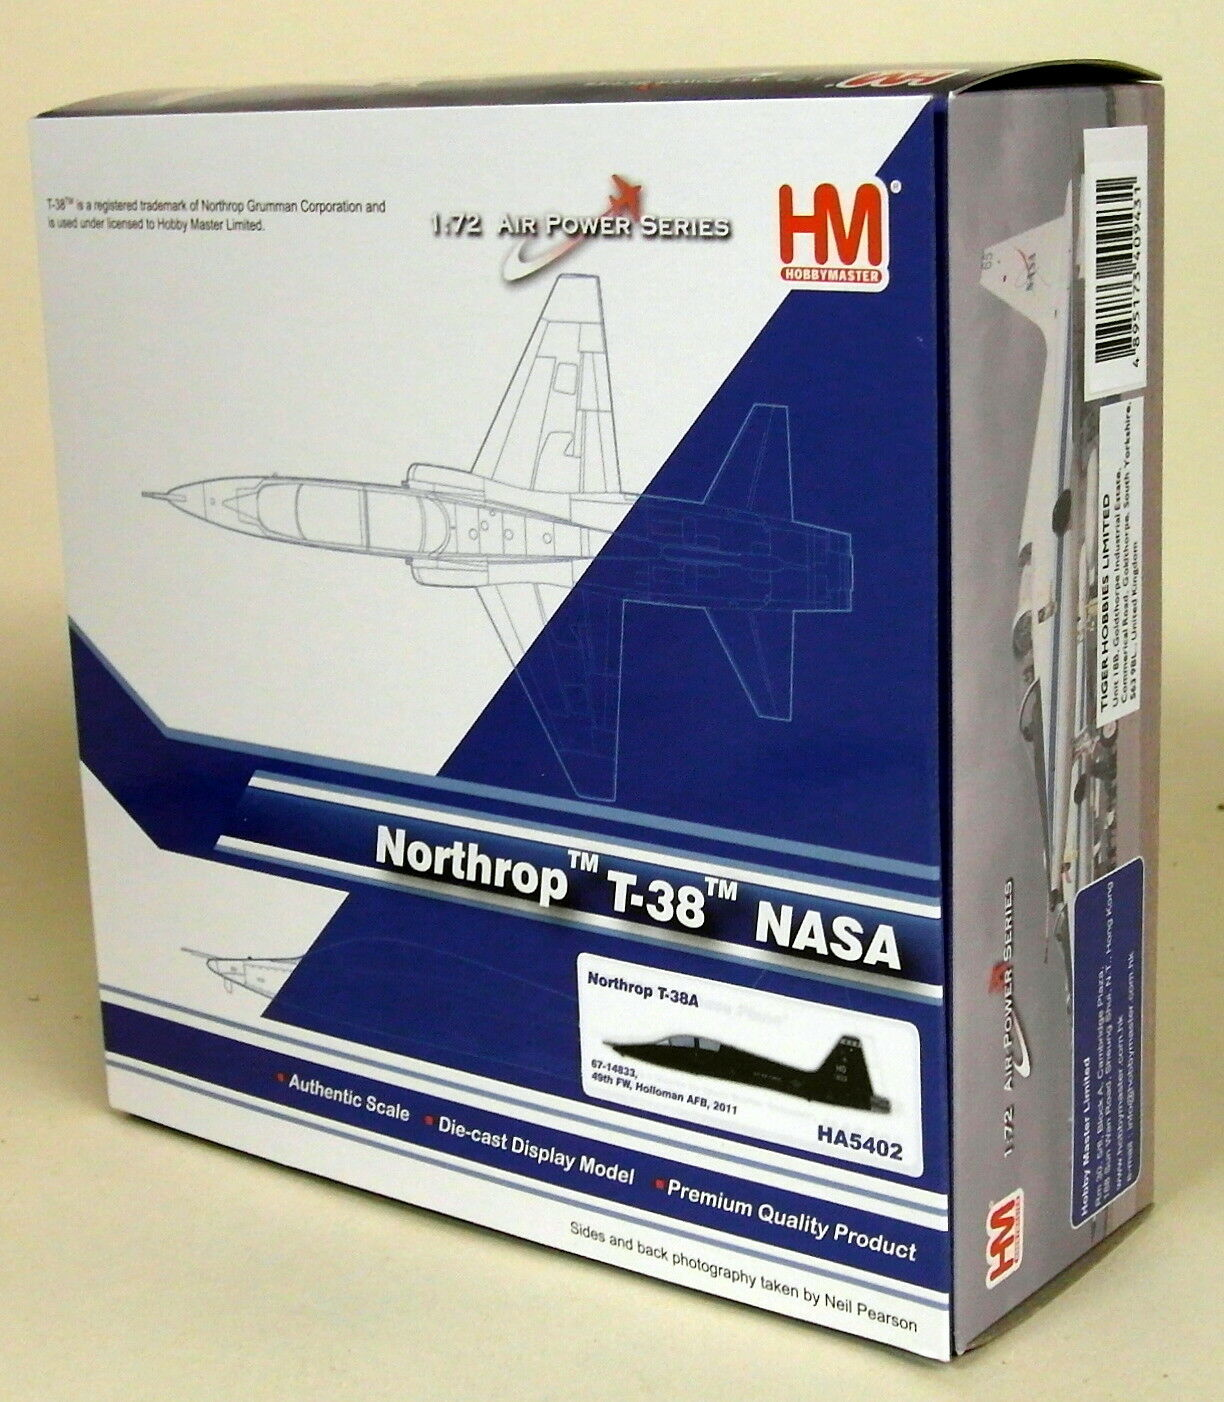 HOBBYMASTER échelle 1 72 HA5402 Northrop T-38 T-38 T-38 NASA 49TH FW 2011 DIECAST AIRPLANE be002b